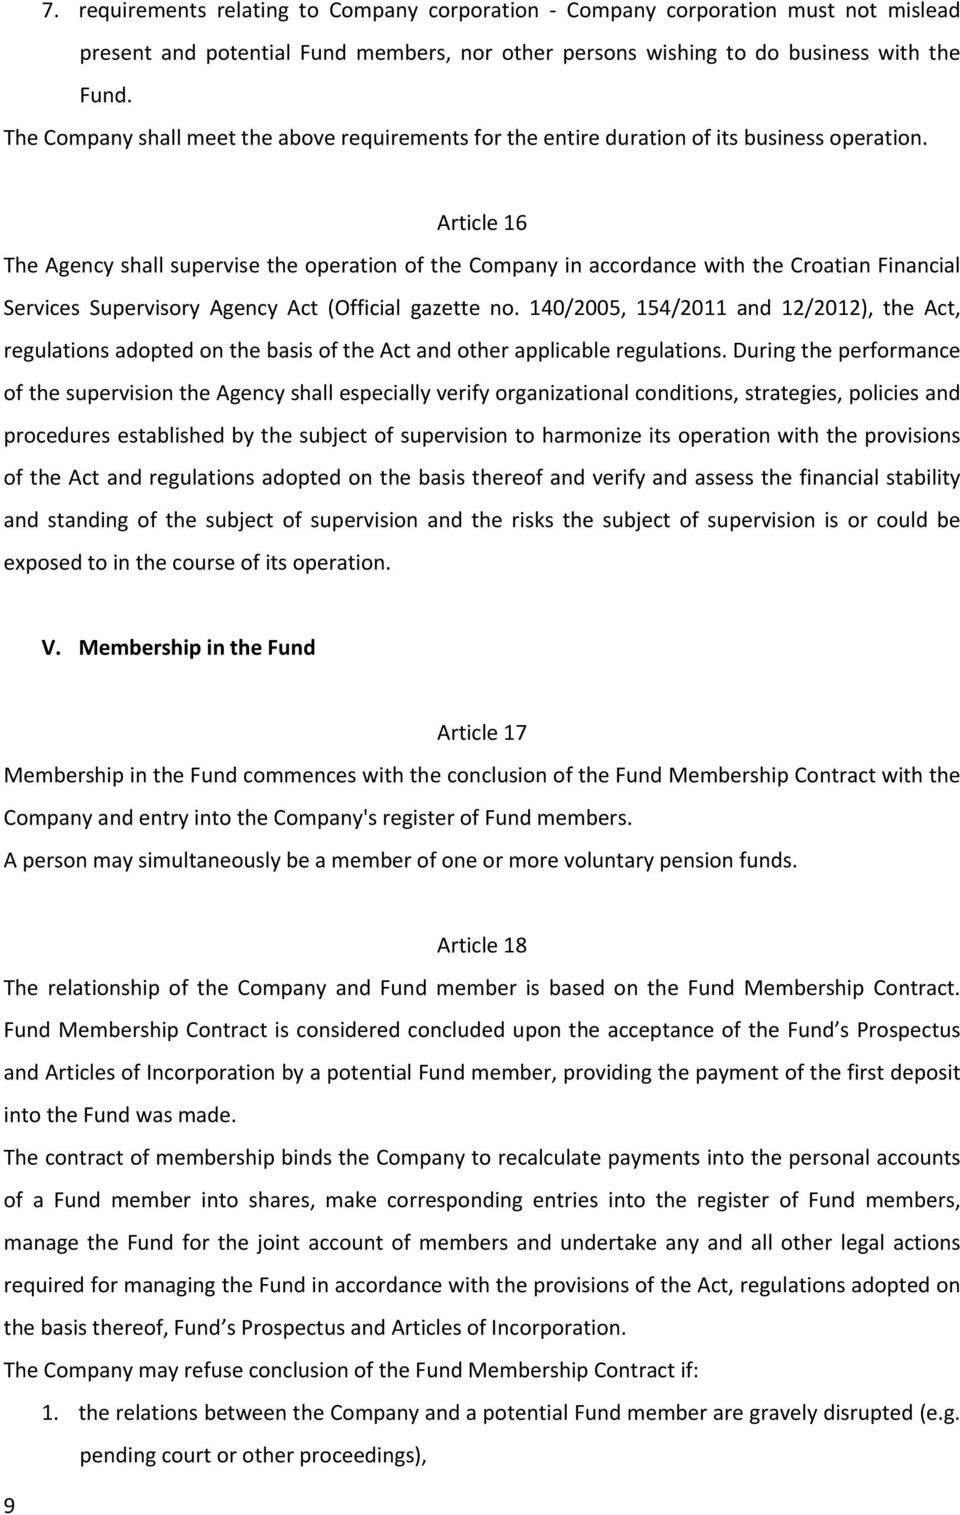 Article 16 The Agency shall supervise the operation of the Company in accordance with the Croatian Financial Services Supervisory Agency Act (Official gazette no.